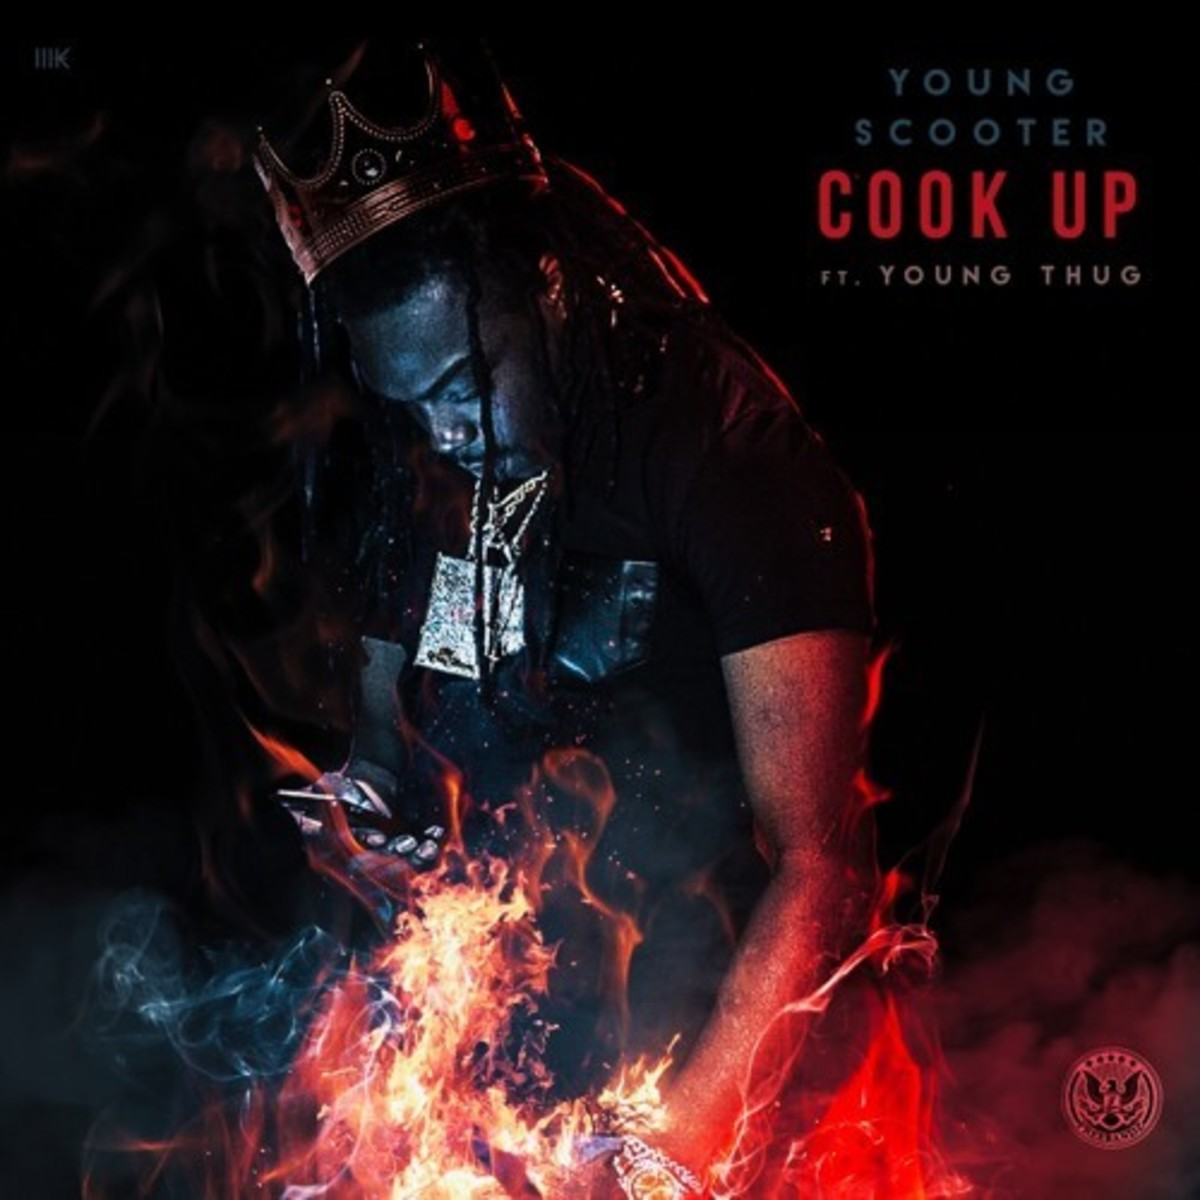 young-scooter-cook-up.jpg